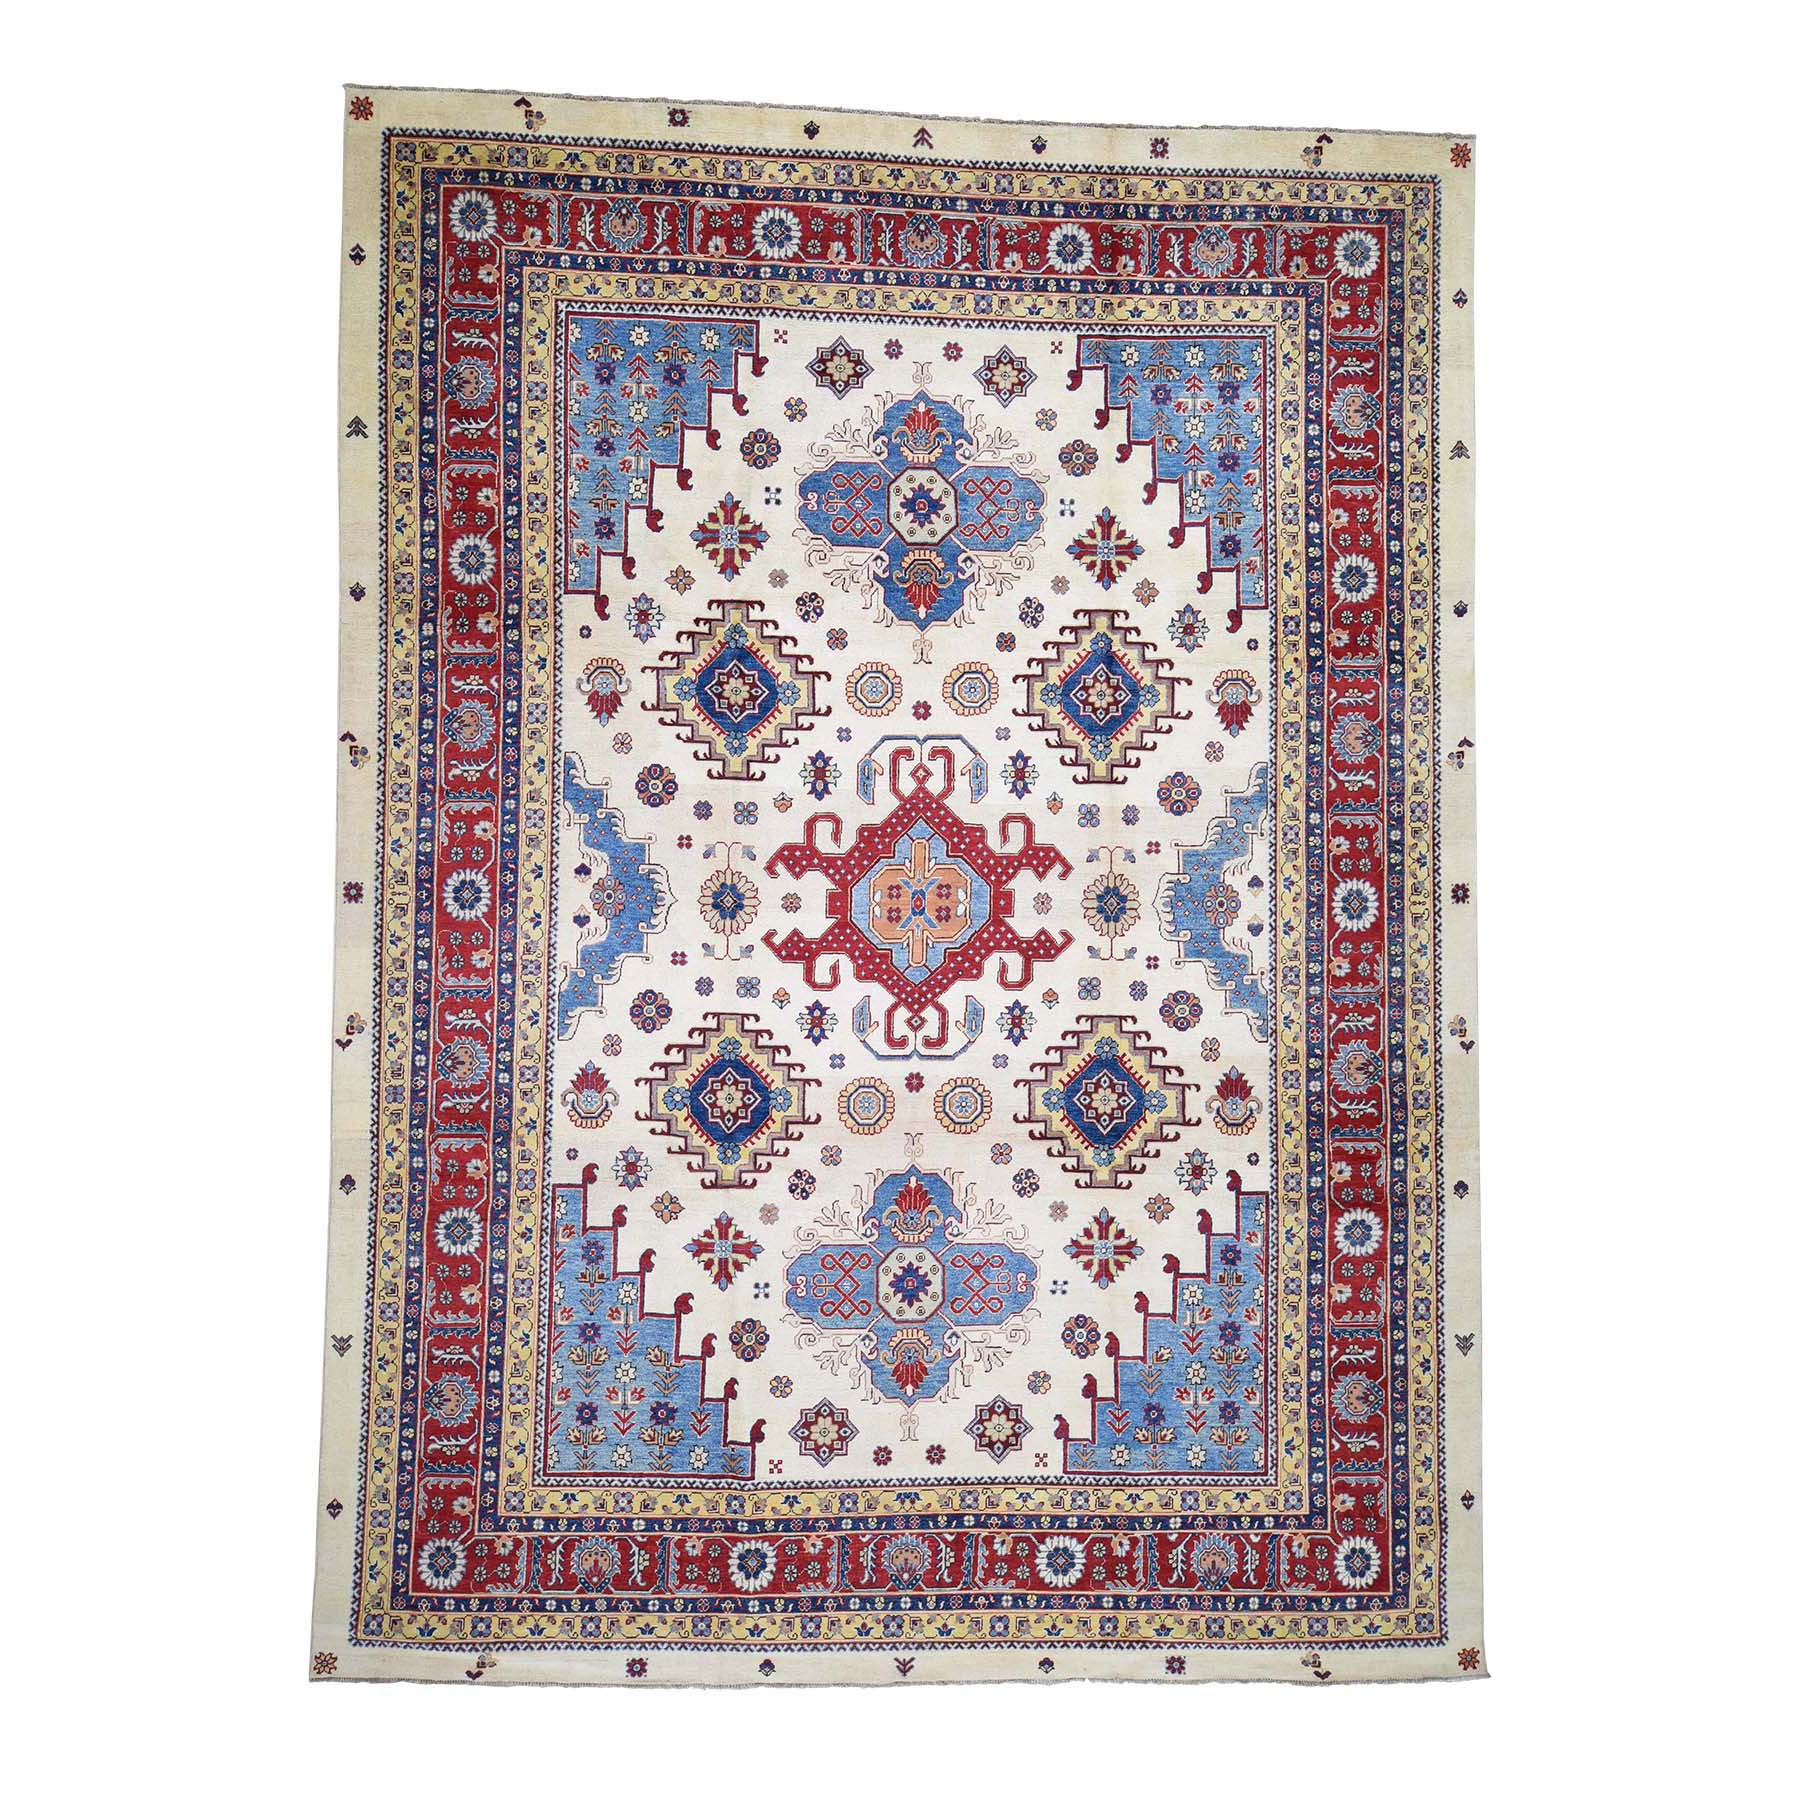 10-x13-3  Special Kazak Pure Wool Hand-Knotted Geometric Design Oriental Rug